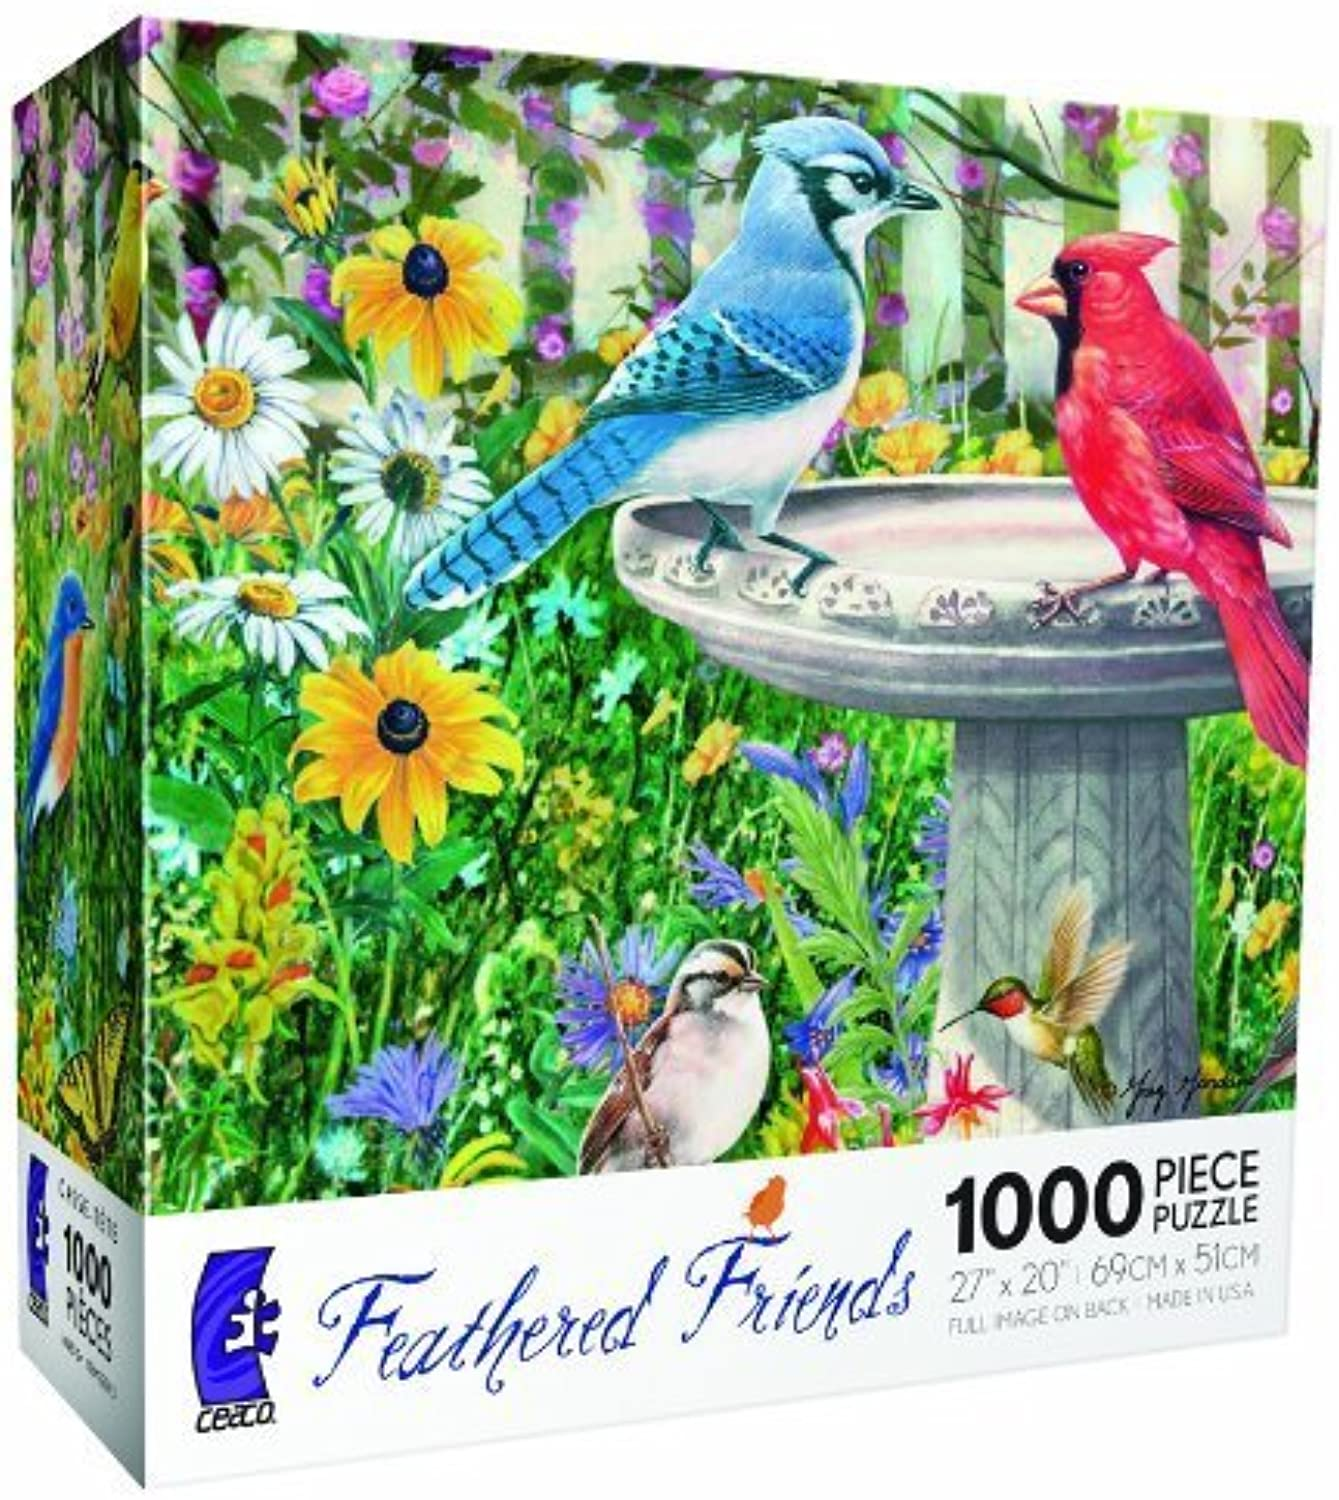 Backyard Birdbath Featherot Friends series - 1000 pc Jigsaw Puzzle by Ceaco by Ceaco